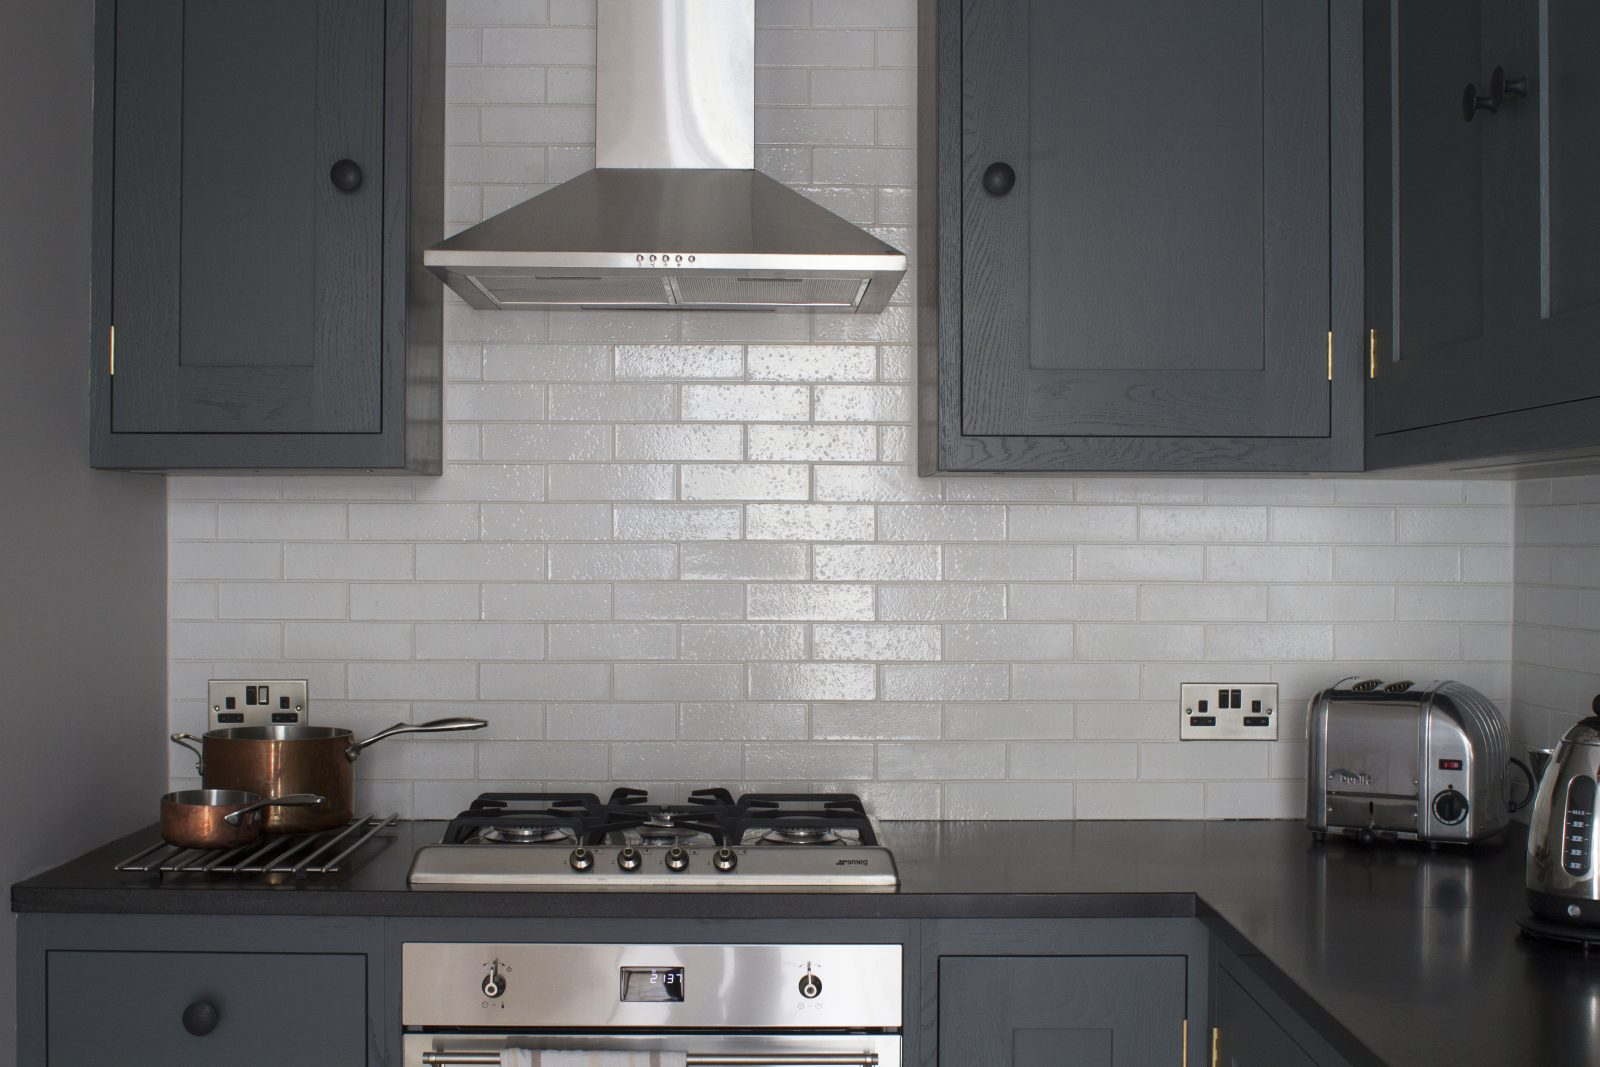 How To Paint Kitchen Tiles White